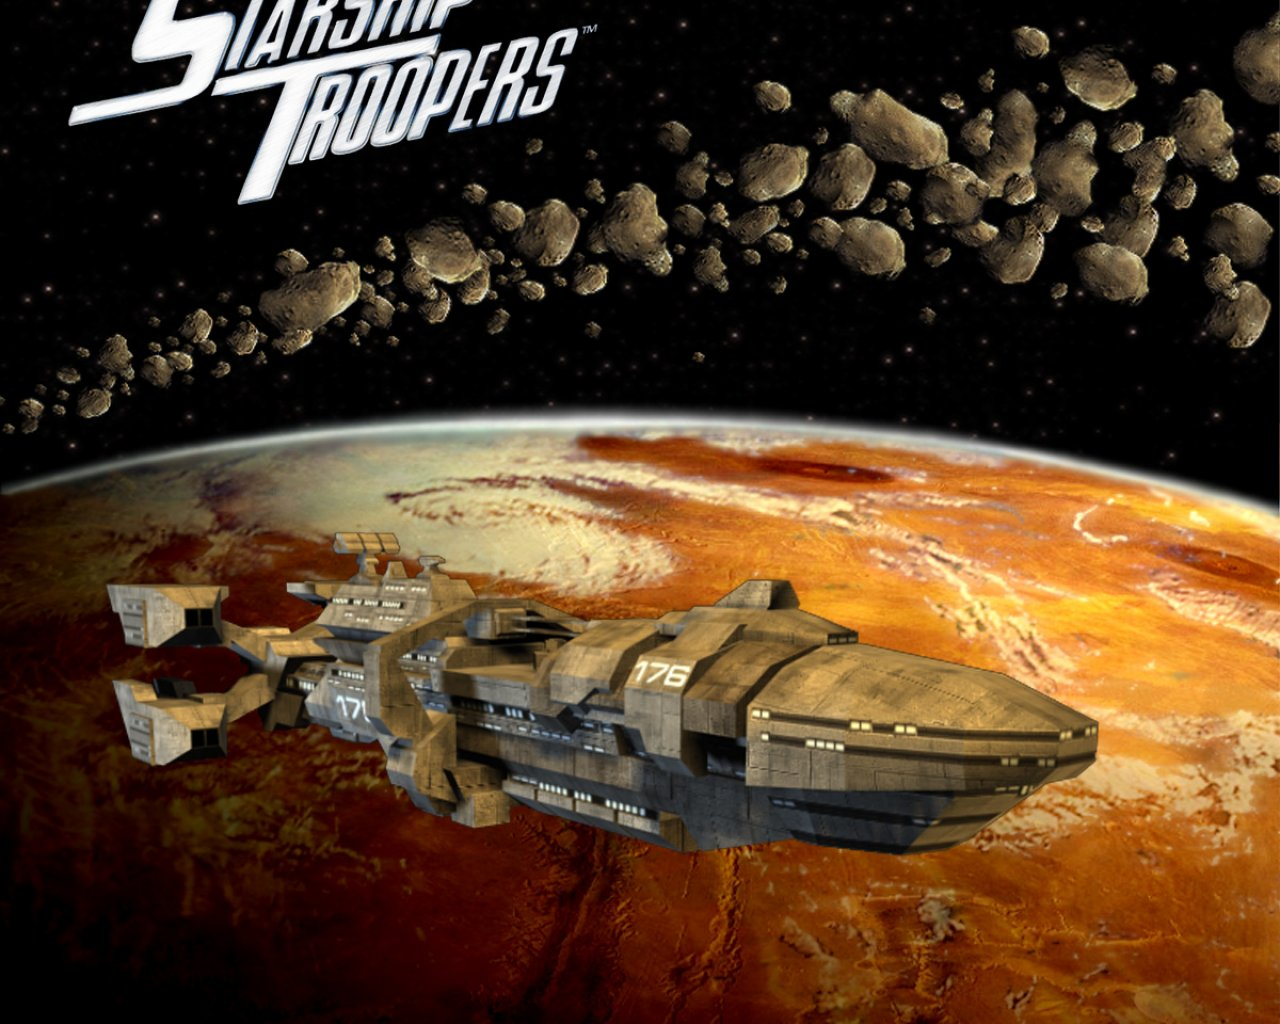 Starship Troopers Wallpapers   Download Starship Troopers Wallpapers 1280x1024